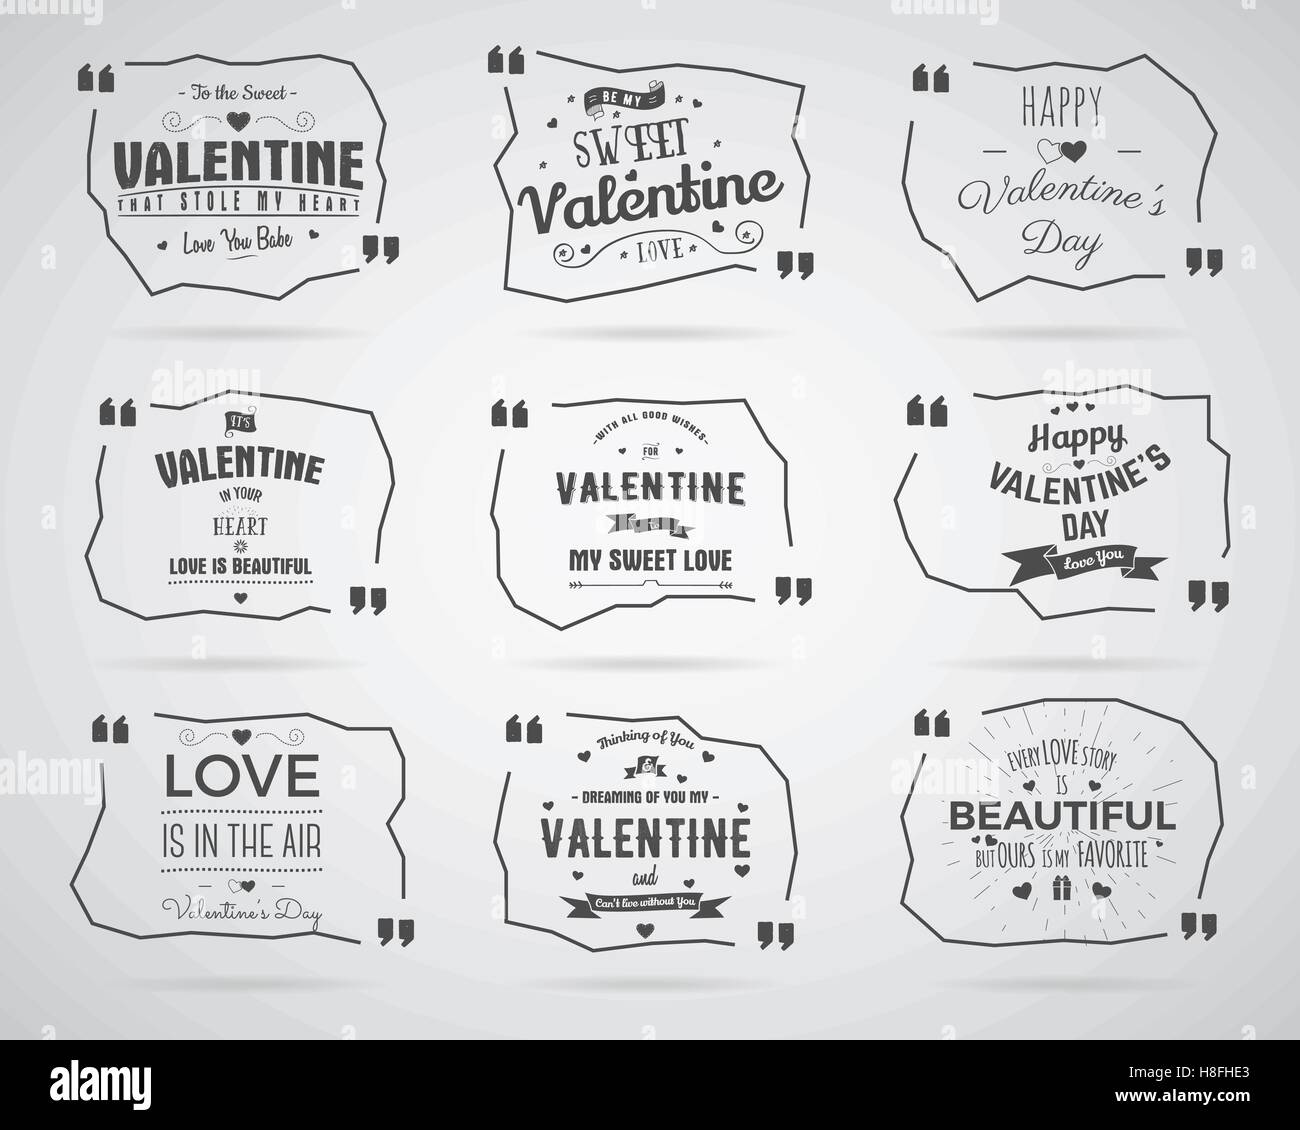 Overlay Word Valentines Day Card Stock Photos Overlay Word